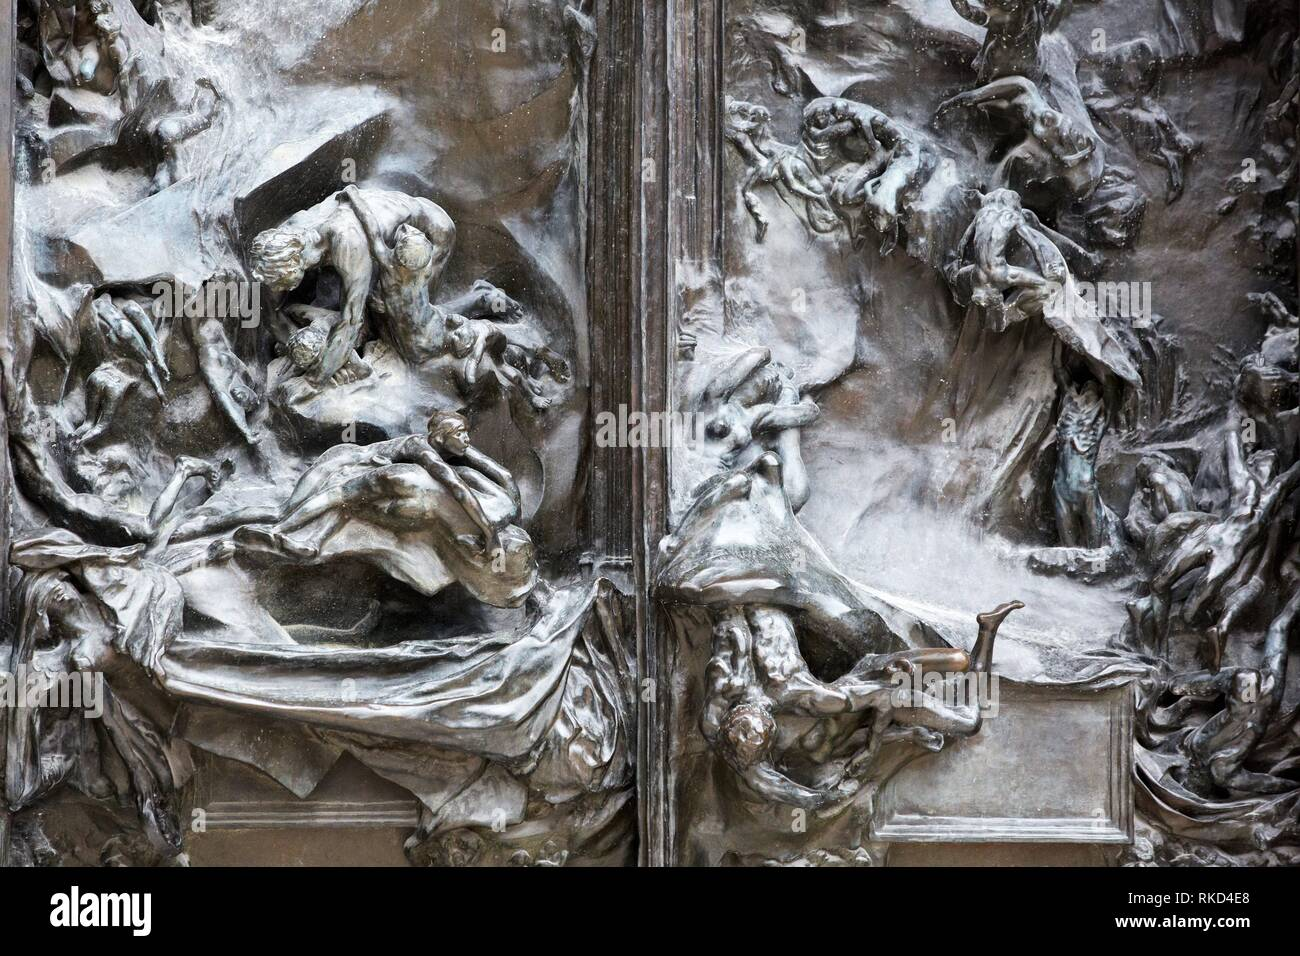 '''Les portes de l'enfer'', sculpture d'Auguste Rodin. Musée Rodin. Paris. France Photo Stock